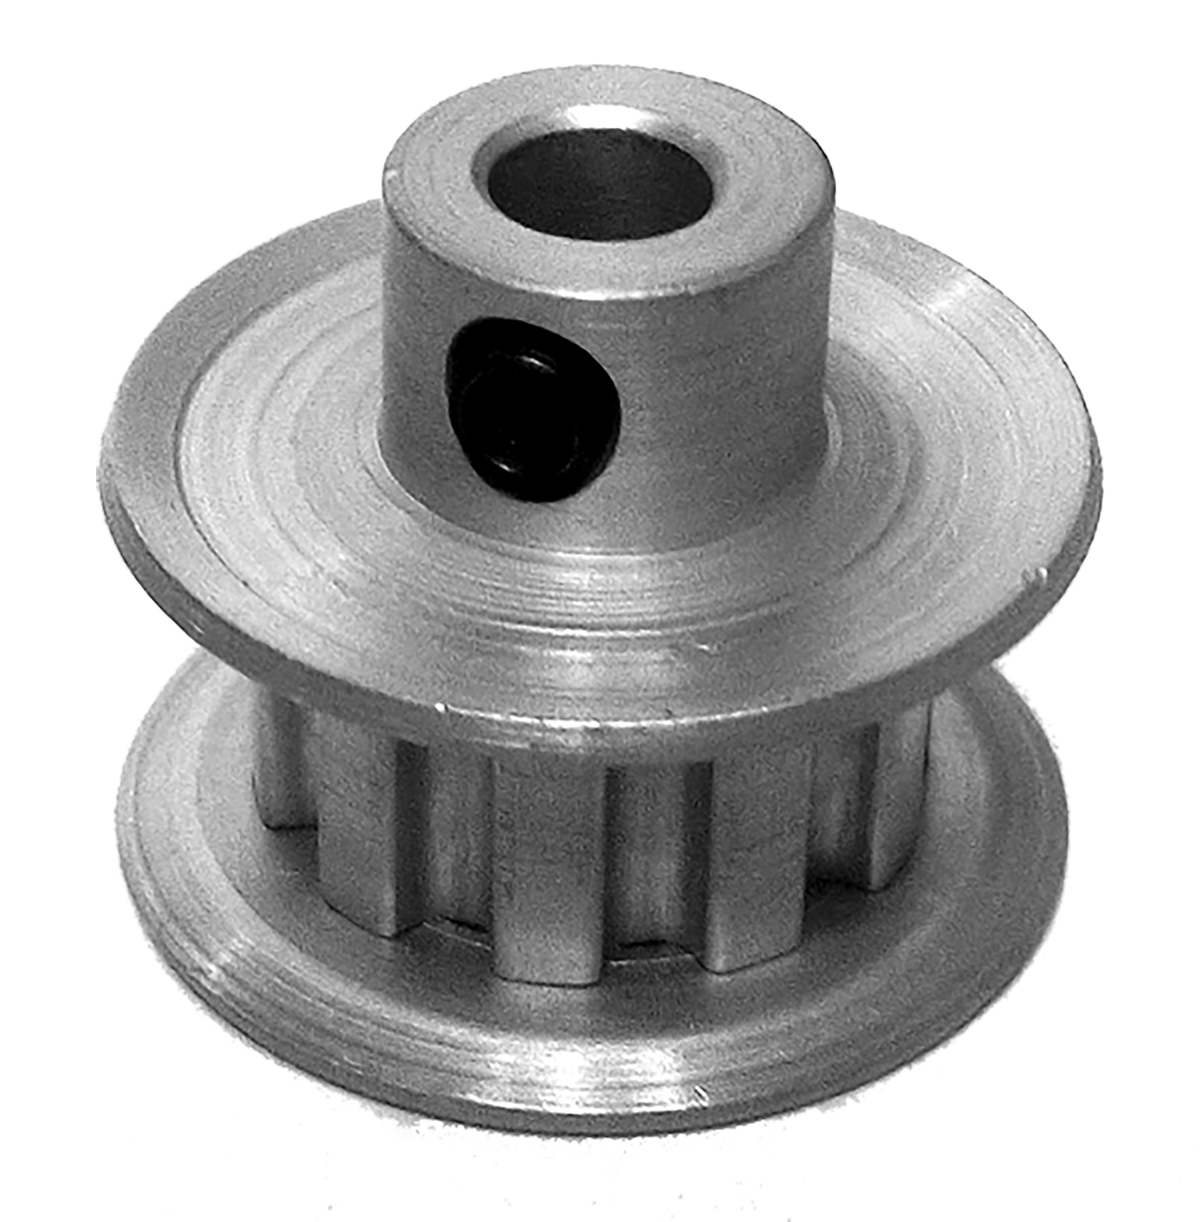 16XL025-6FA4 - Aluminum Imperial Pitch Pulleys